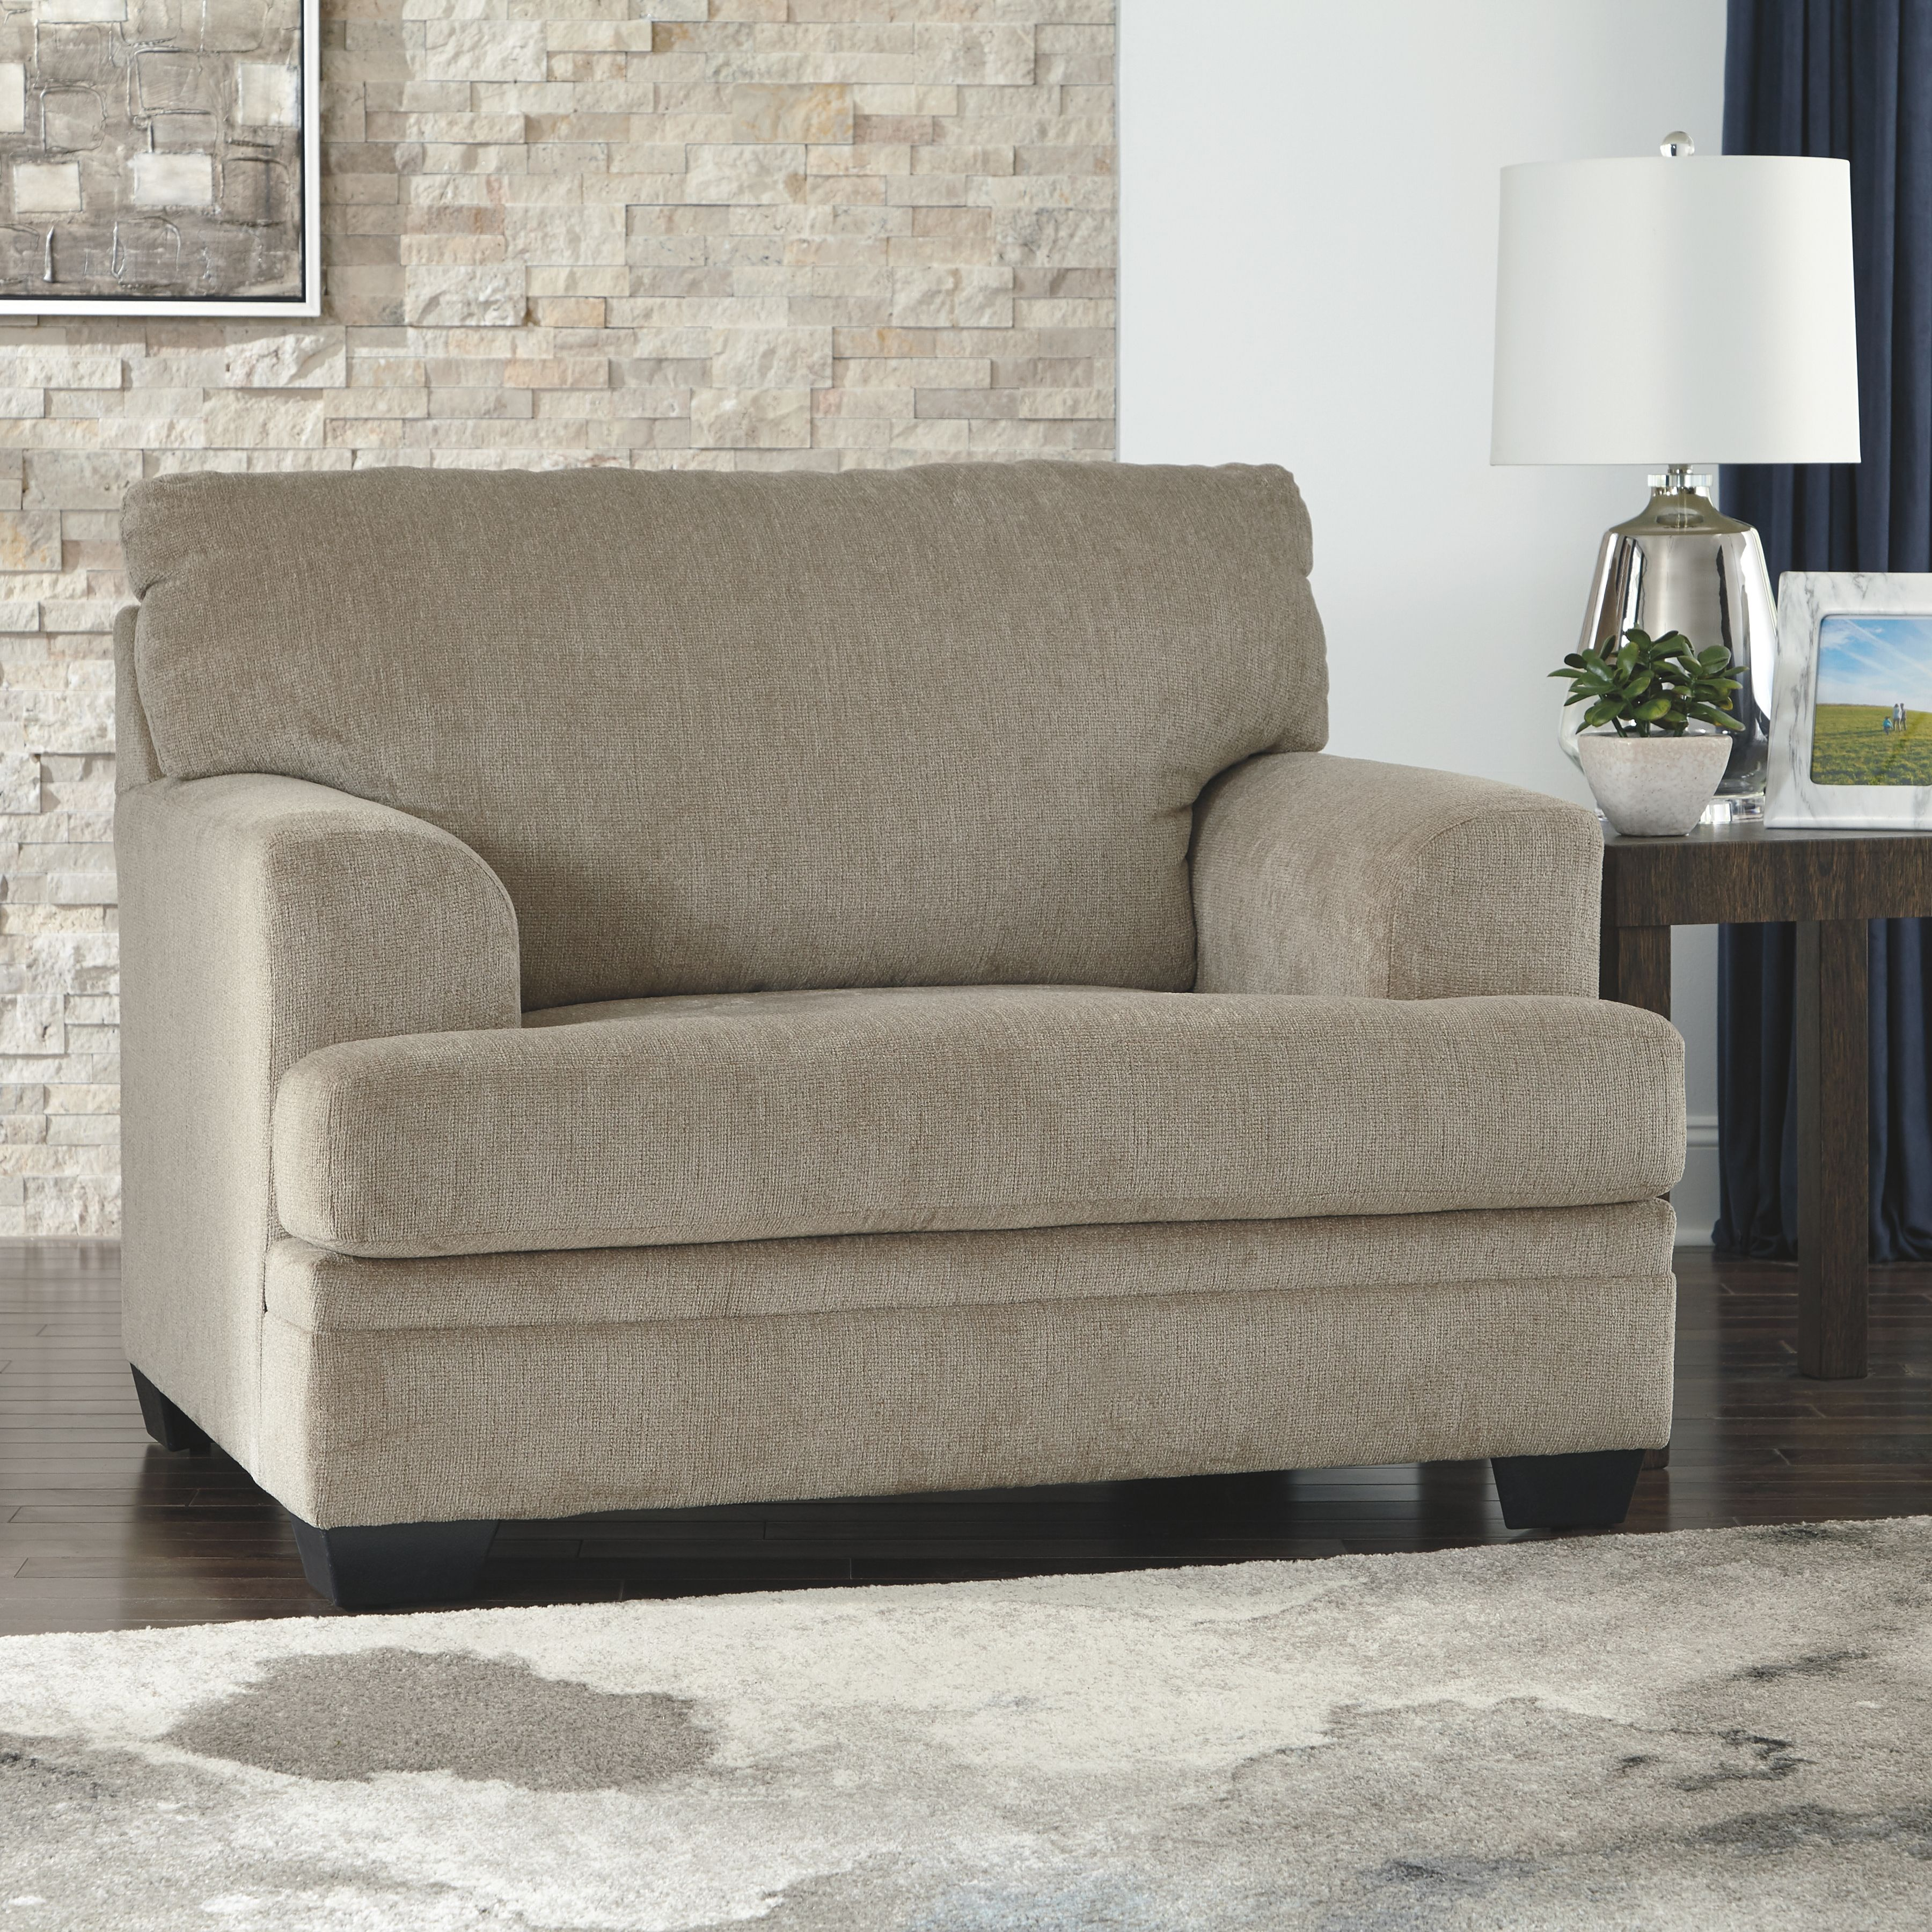 Dorsten Oversized Chair In 2020 Living Room Furniture Recliner Chair And A Half Comfy Chairs